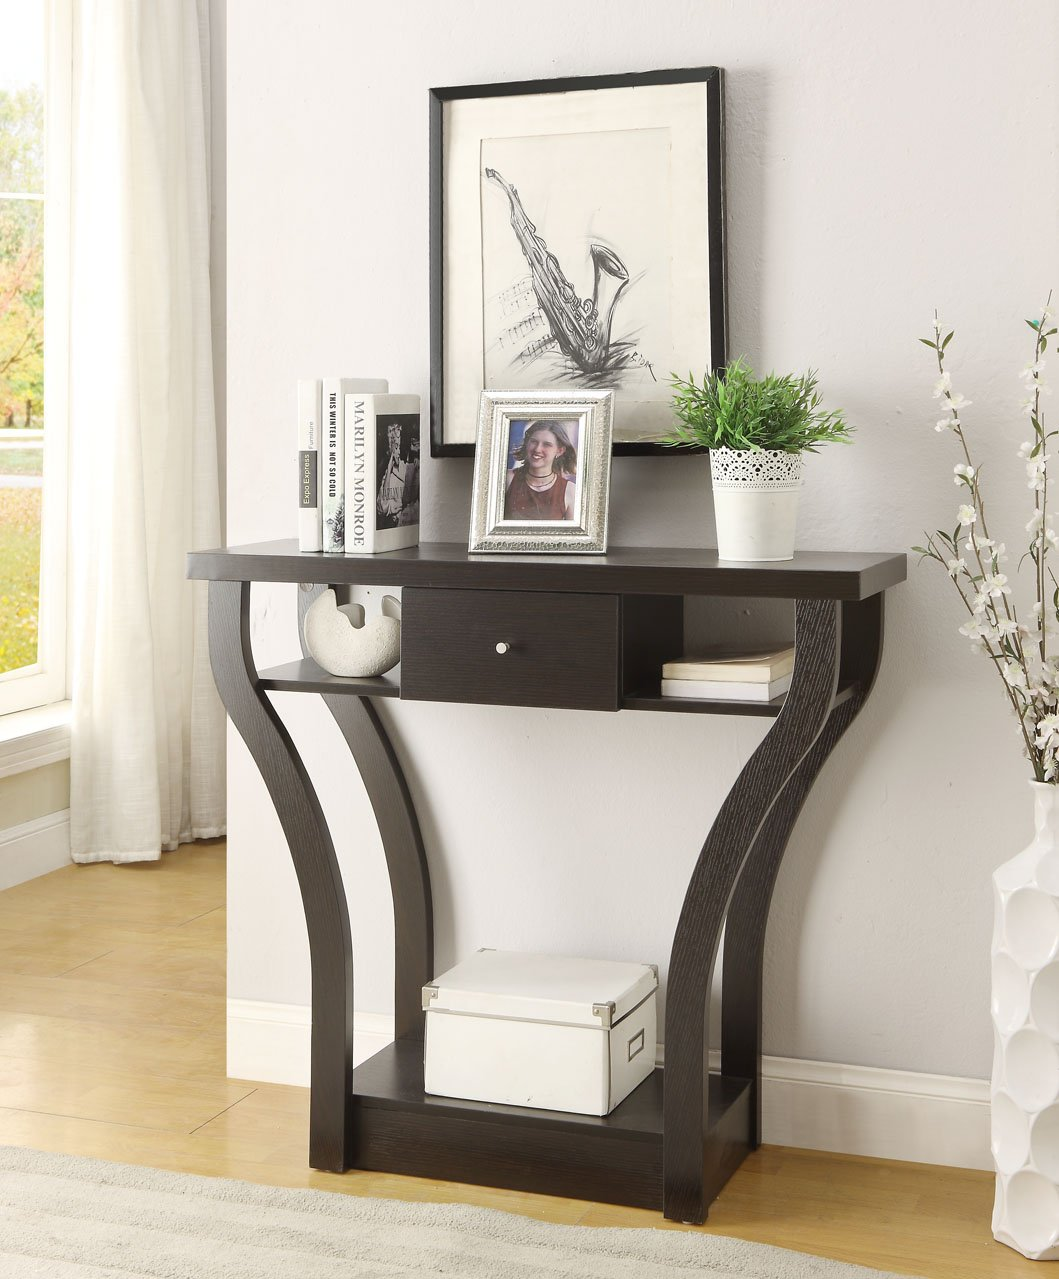 V Amazoncom Cappuccino Finish Curved Console Sofa Entry Hall Table With  Shelf  Drawer Kitchen U0026 Dining